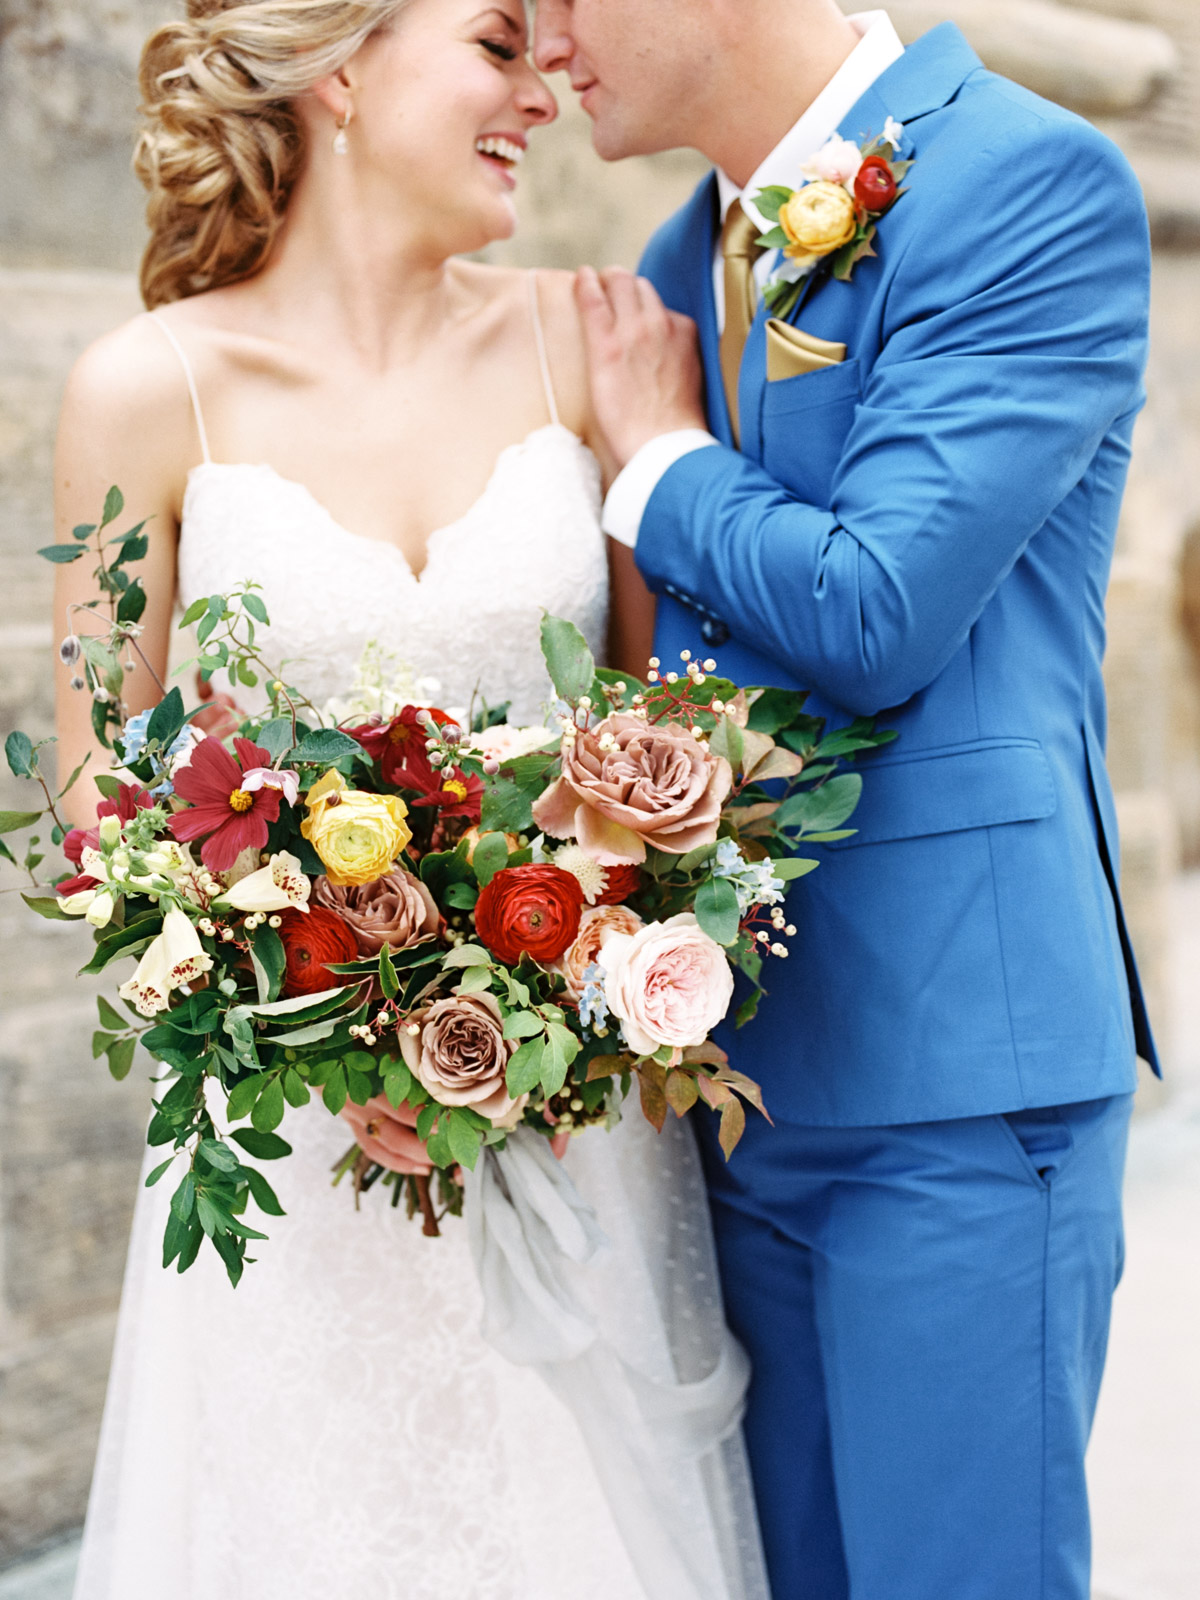 How to Choose Your Wedding Photographer by Cleveland Wedding Photographer Matt Erickson Photography